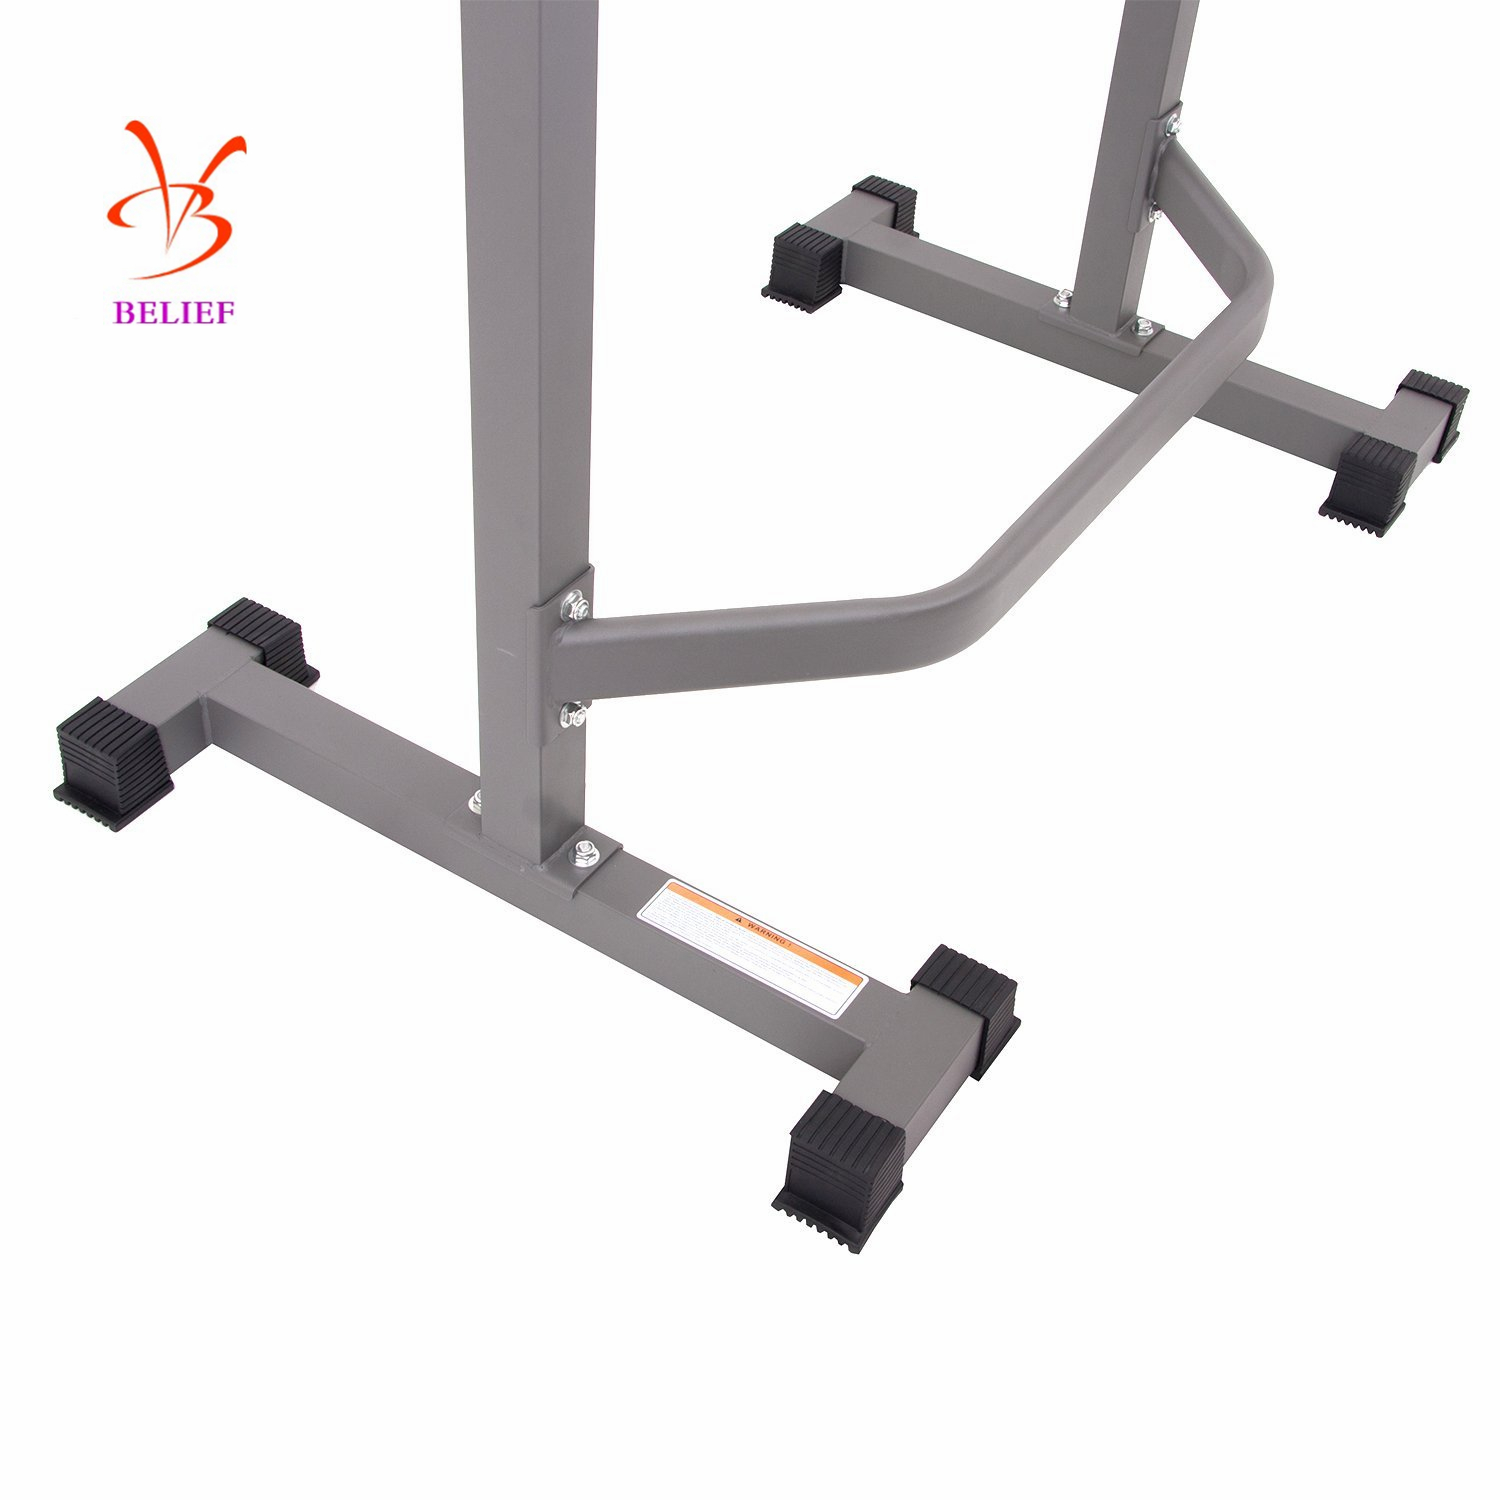 Belief Fitness Equipment Adjustable Squat Rack Home Exercise Equipment